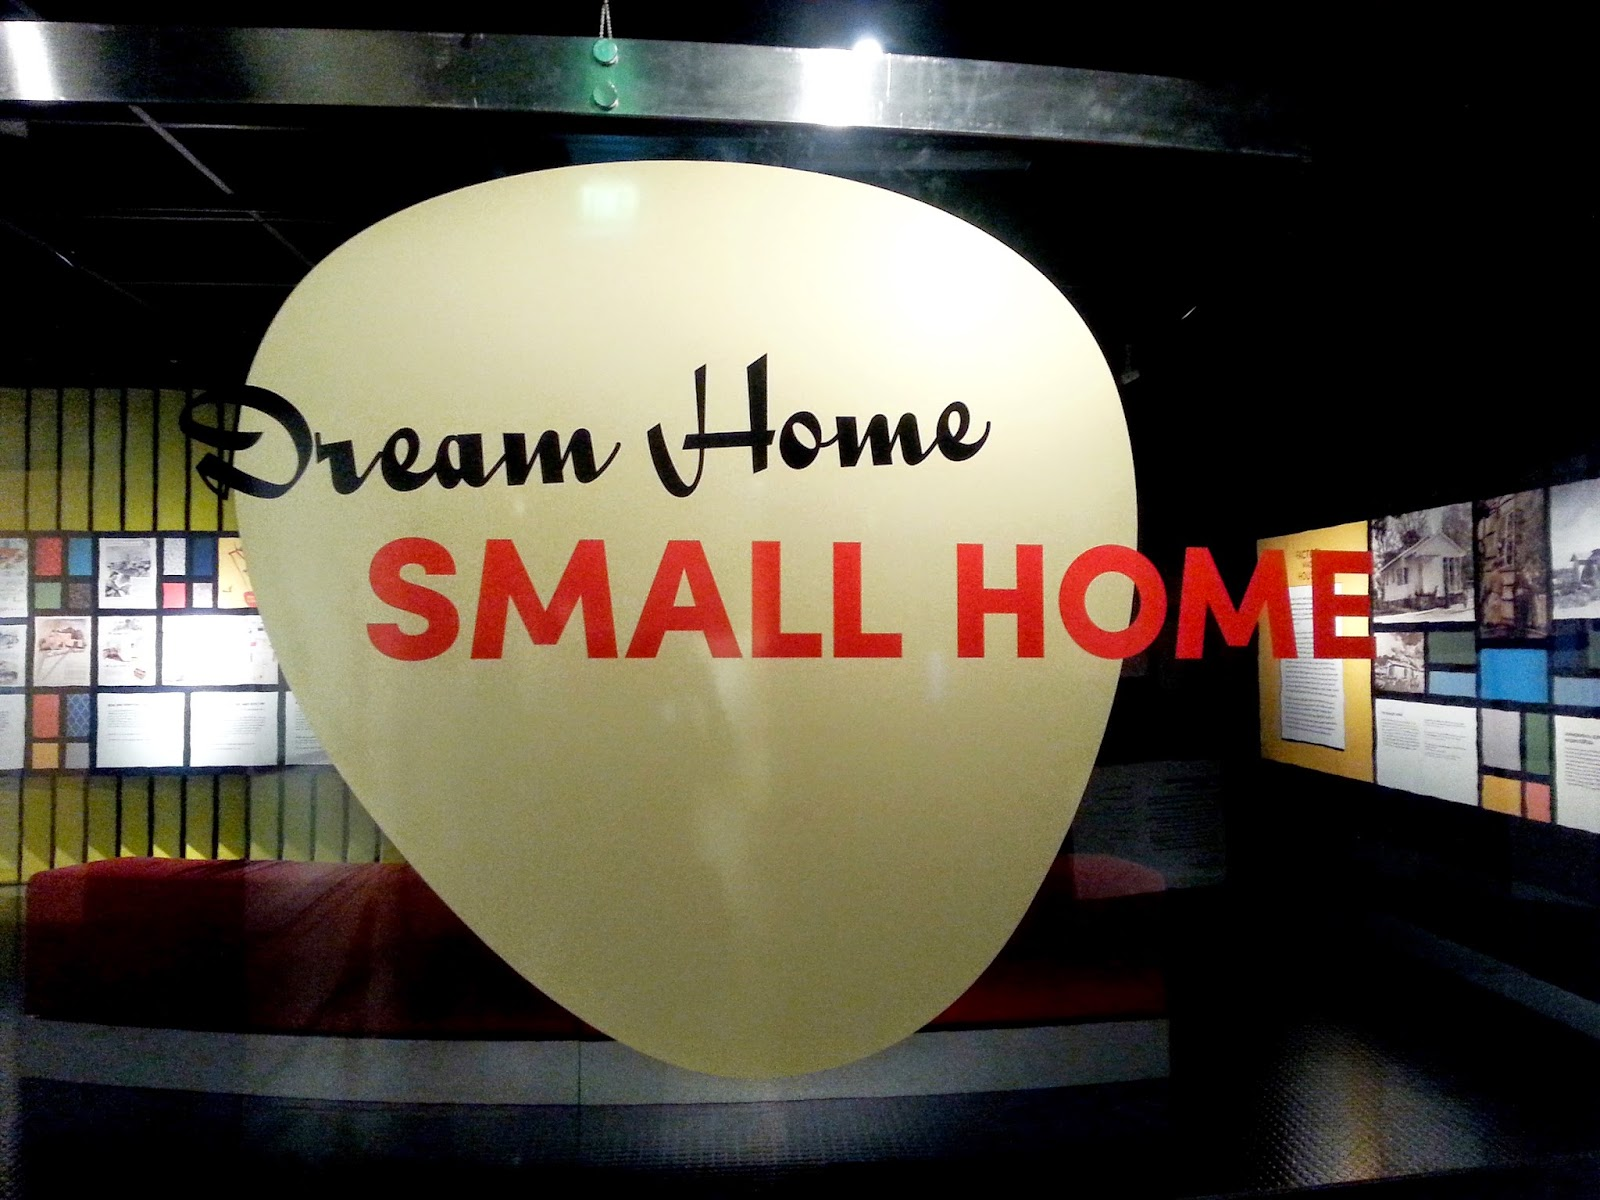 Entry title for the exhibition 'Dream Home Small Home'